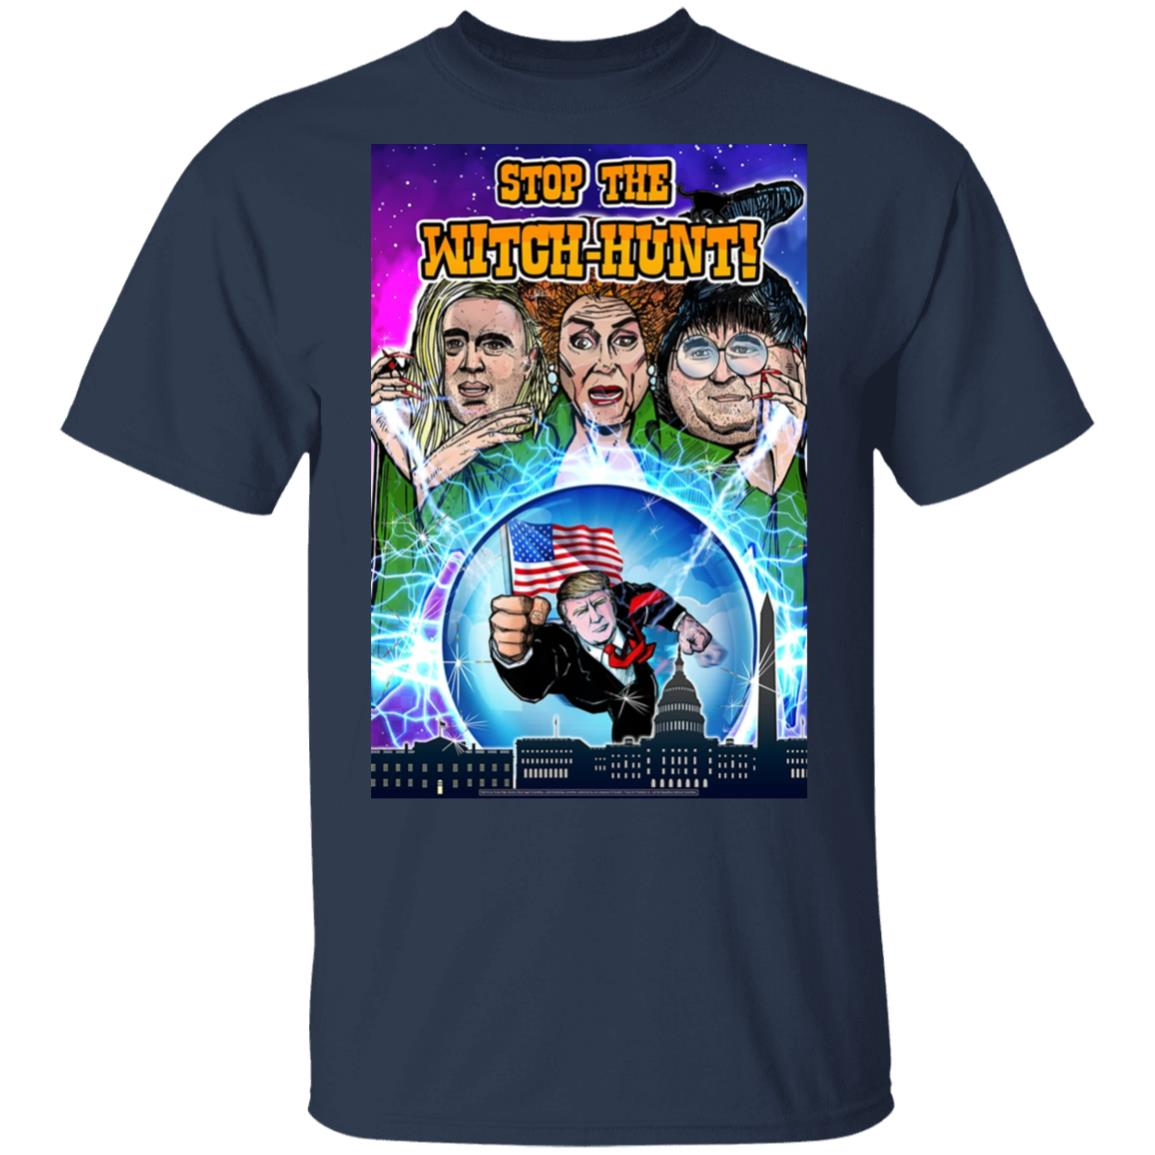 Stop The Witch-Hunt Trump 2020 Shirt T-Shirt